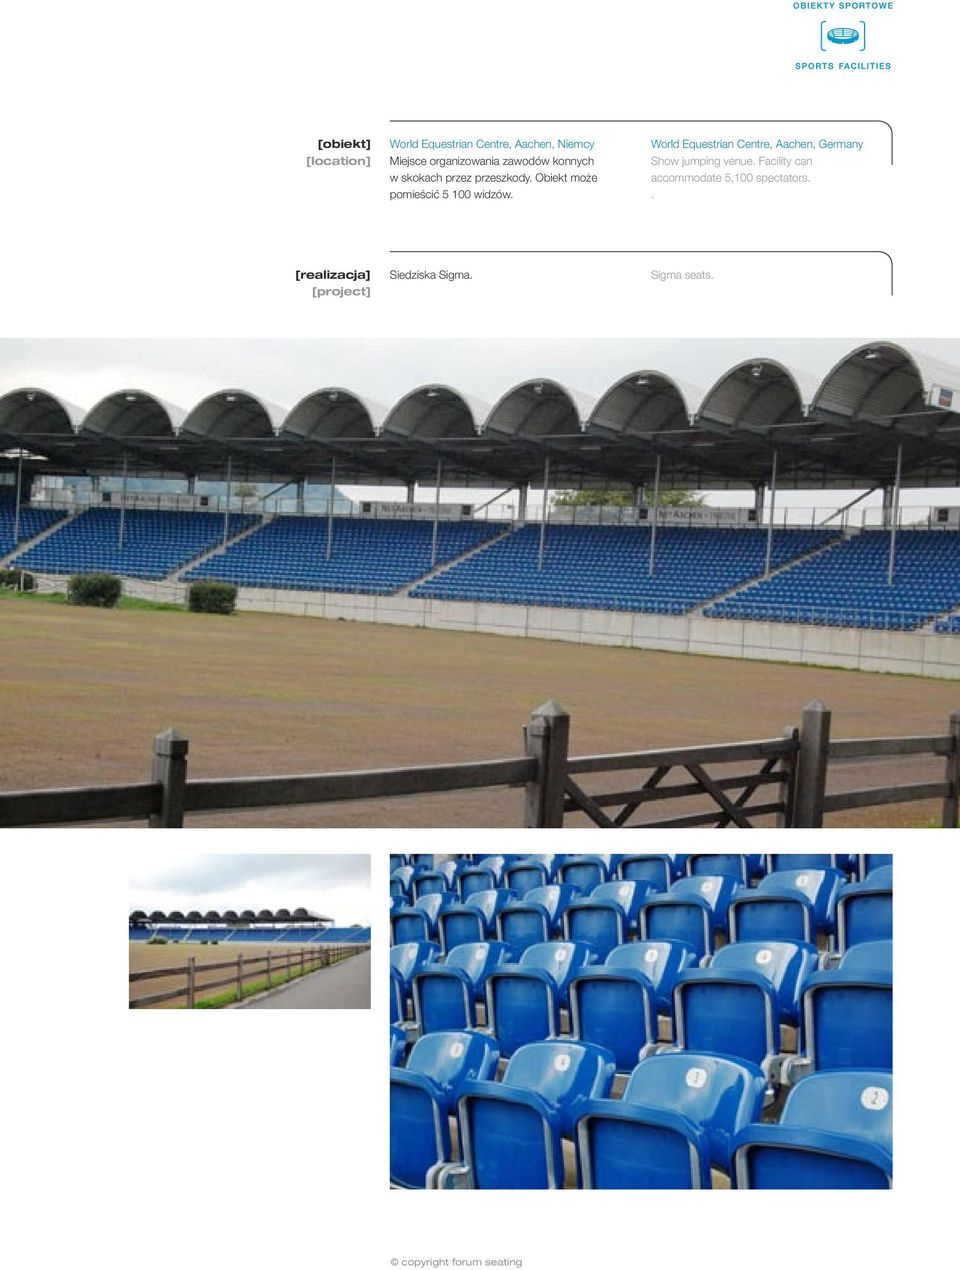 World Equestrian Centre, Aachen, Germany Show jumping venue.